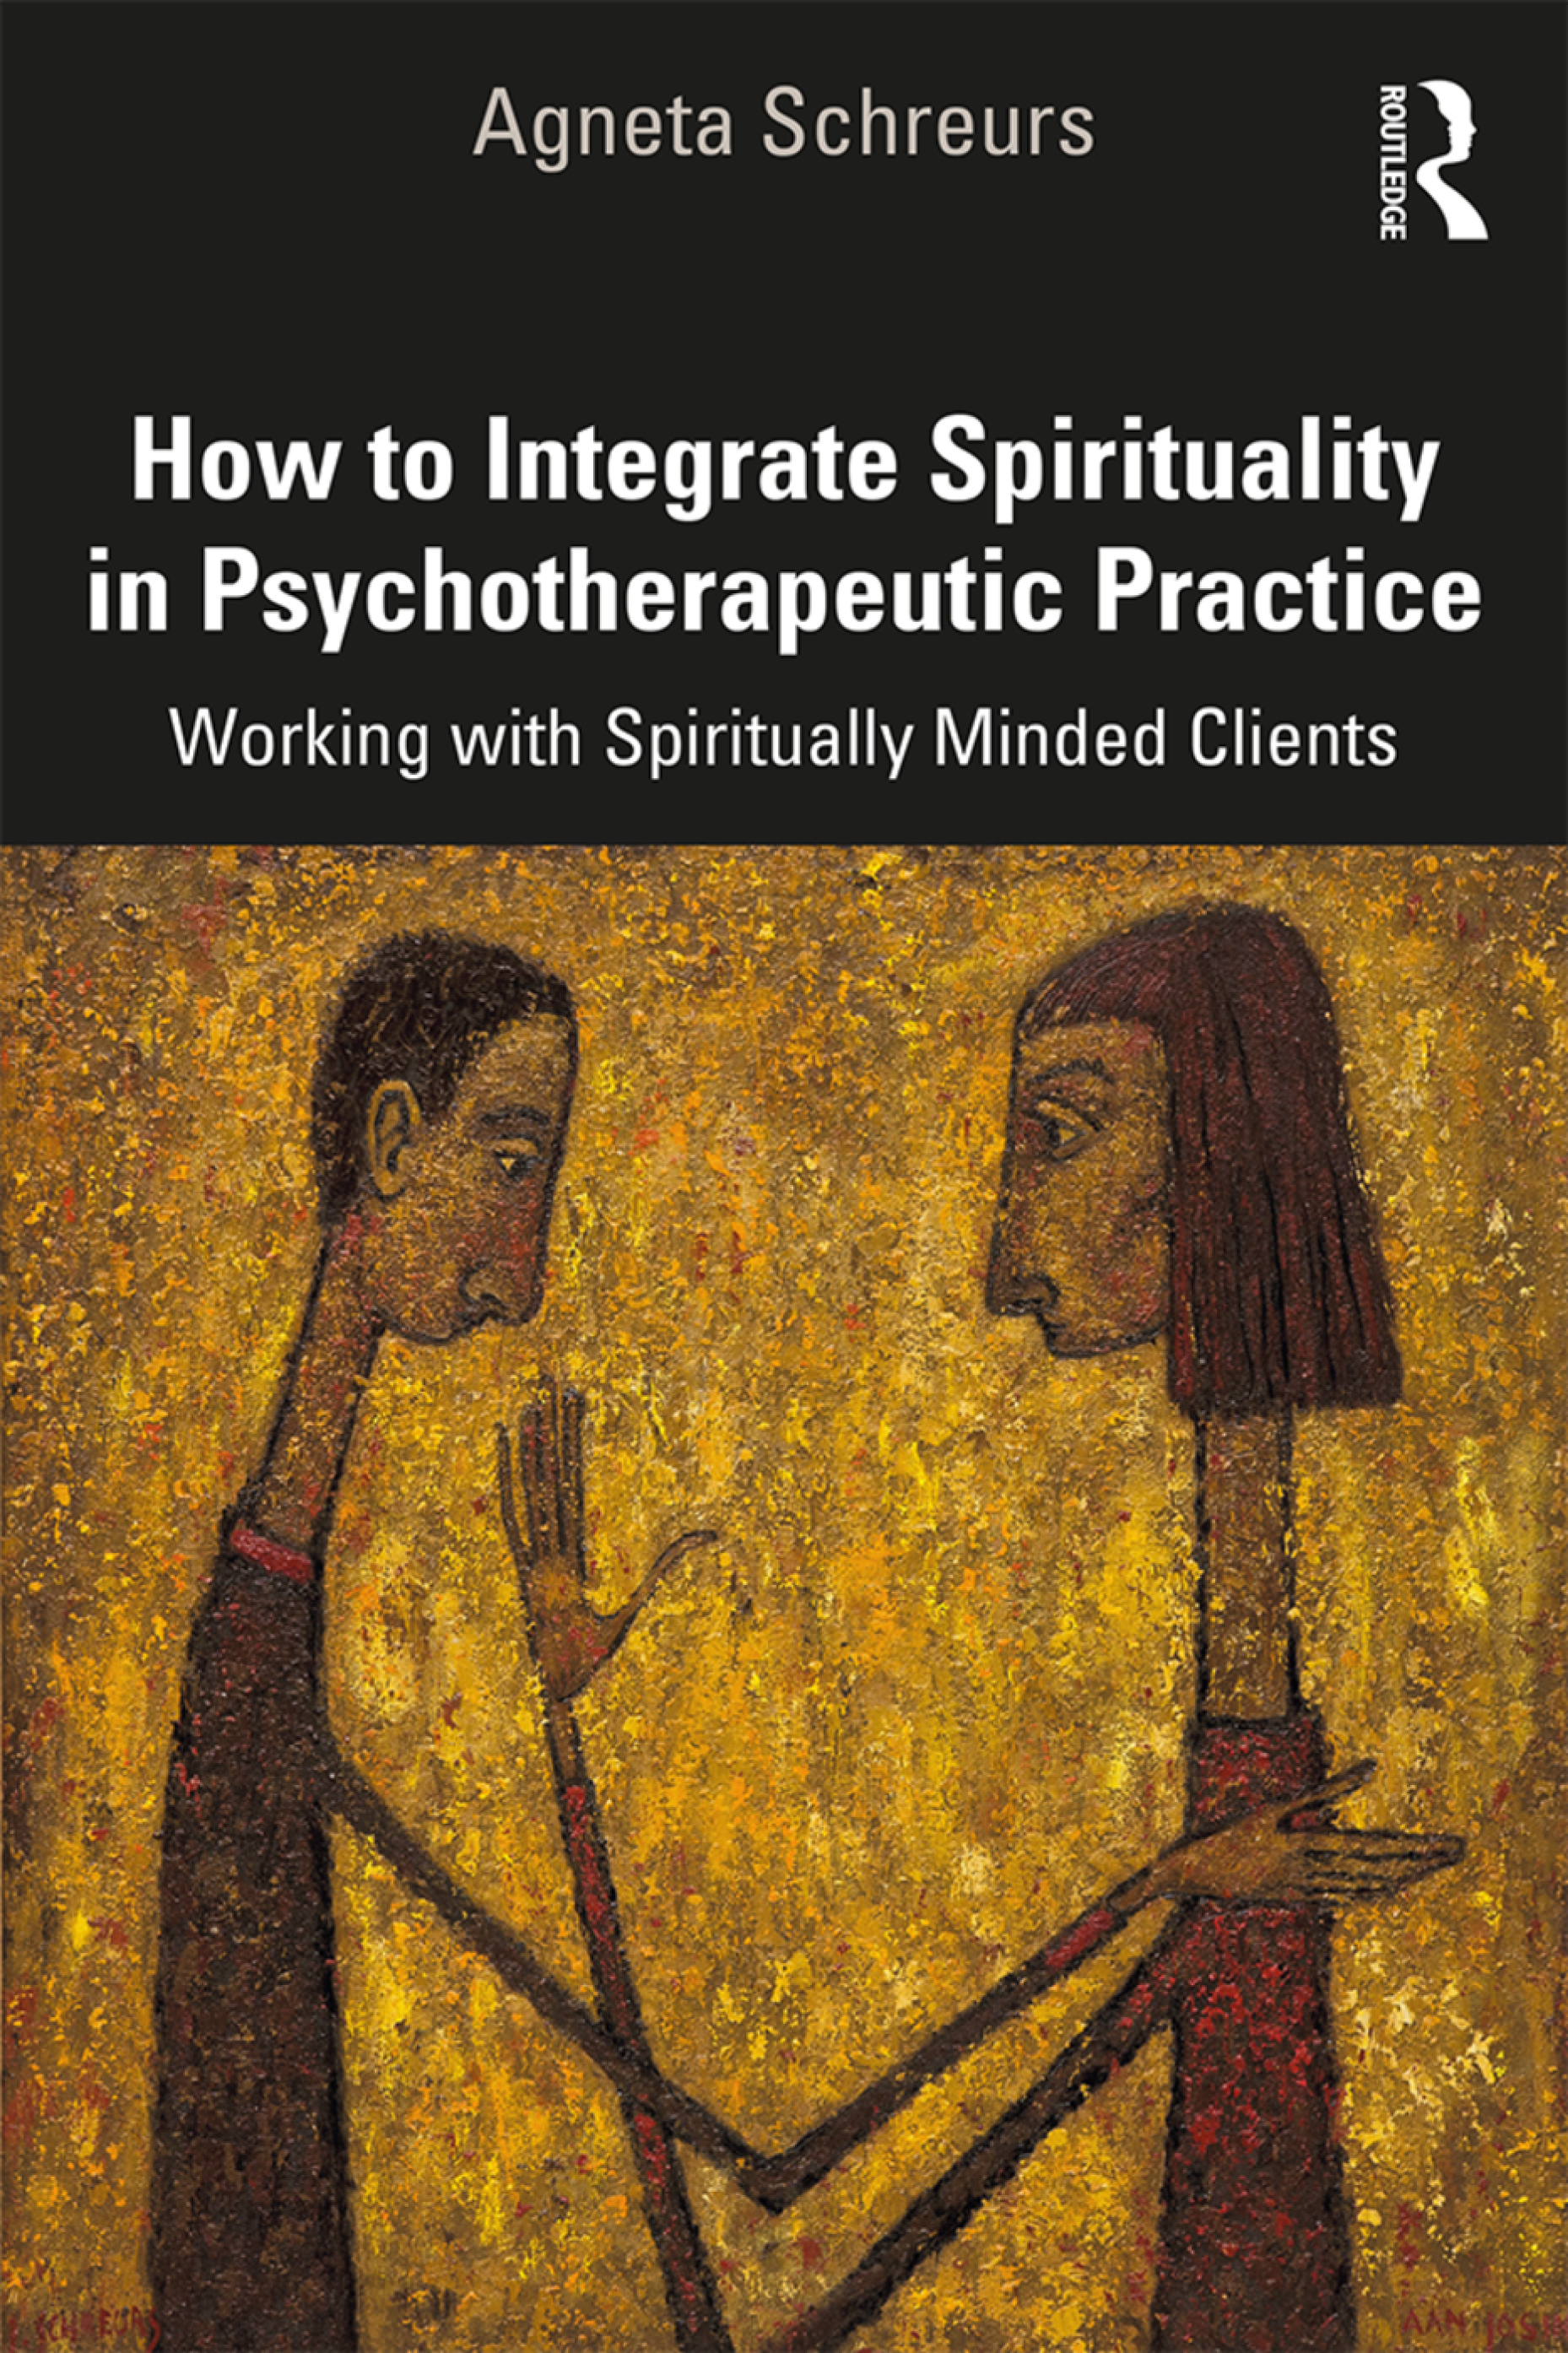 How to Integrate Spirituality in Psychotherapeutic Practice: Working with Spiritually-Minded Clients book cover